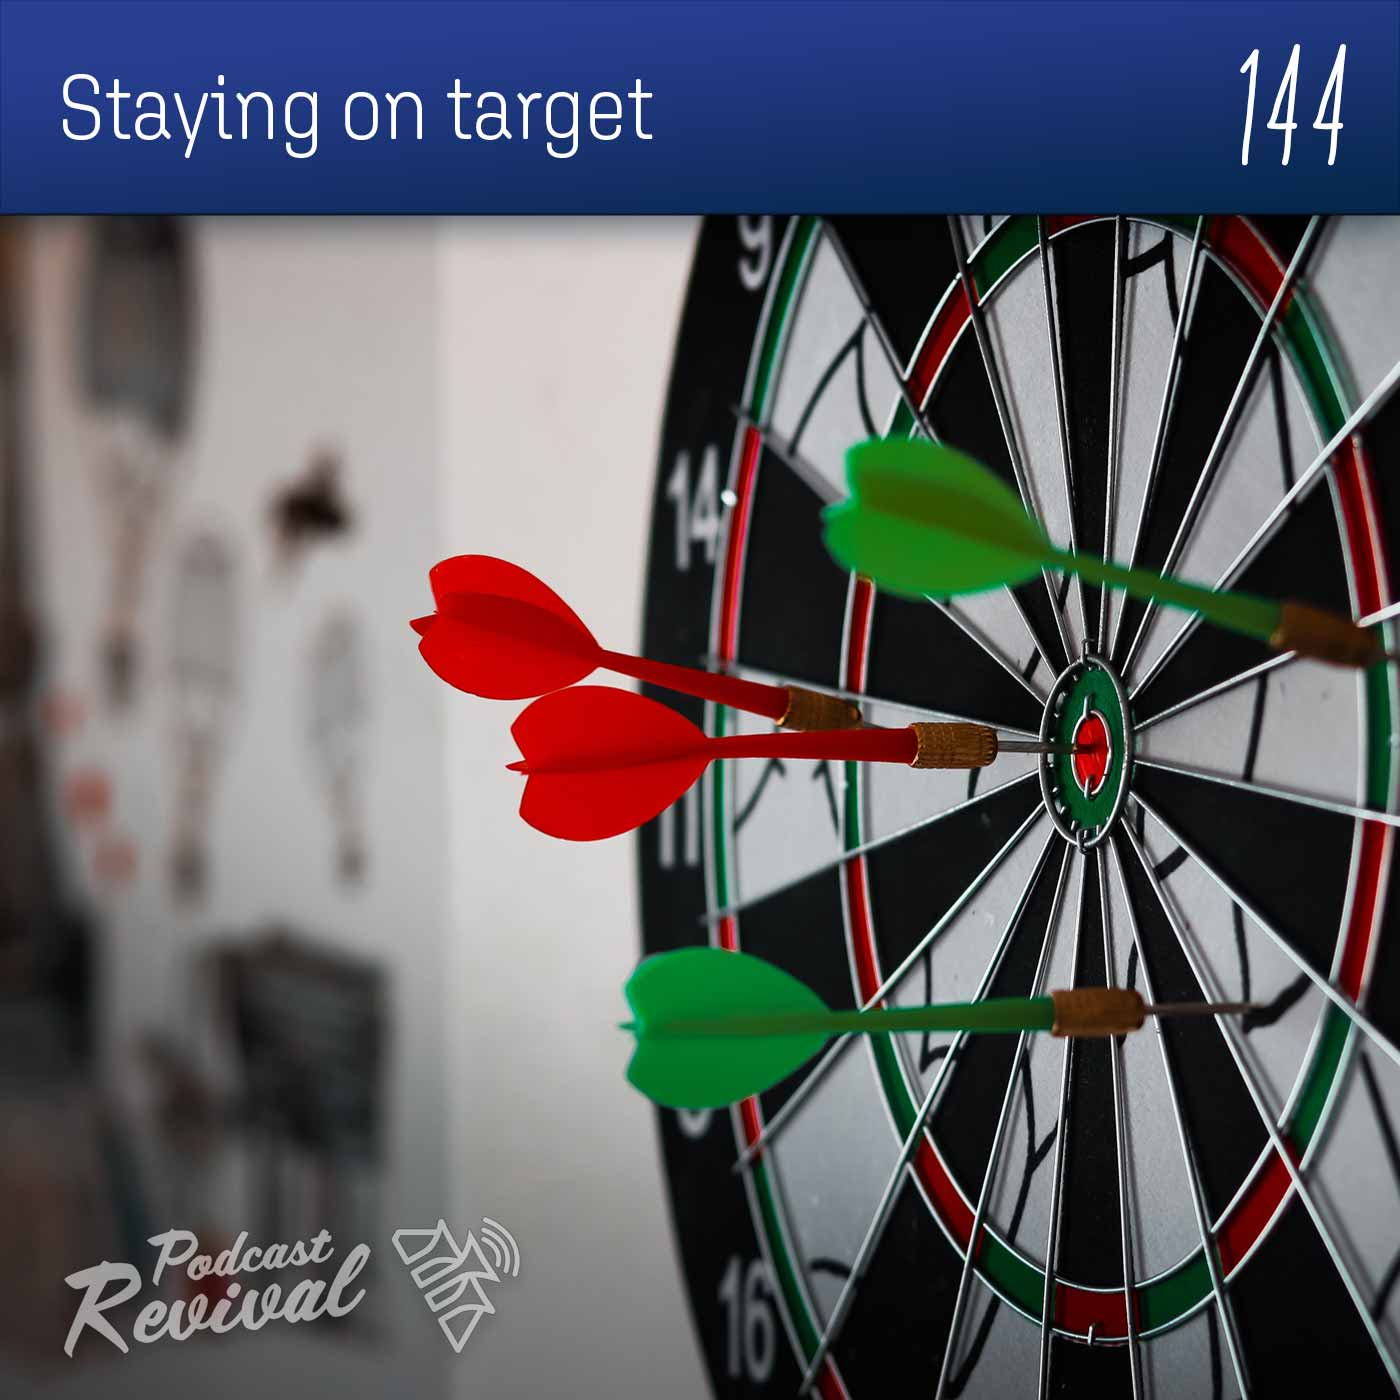 Staying on target